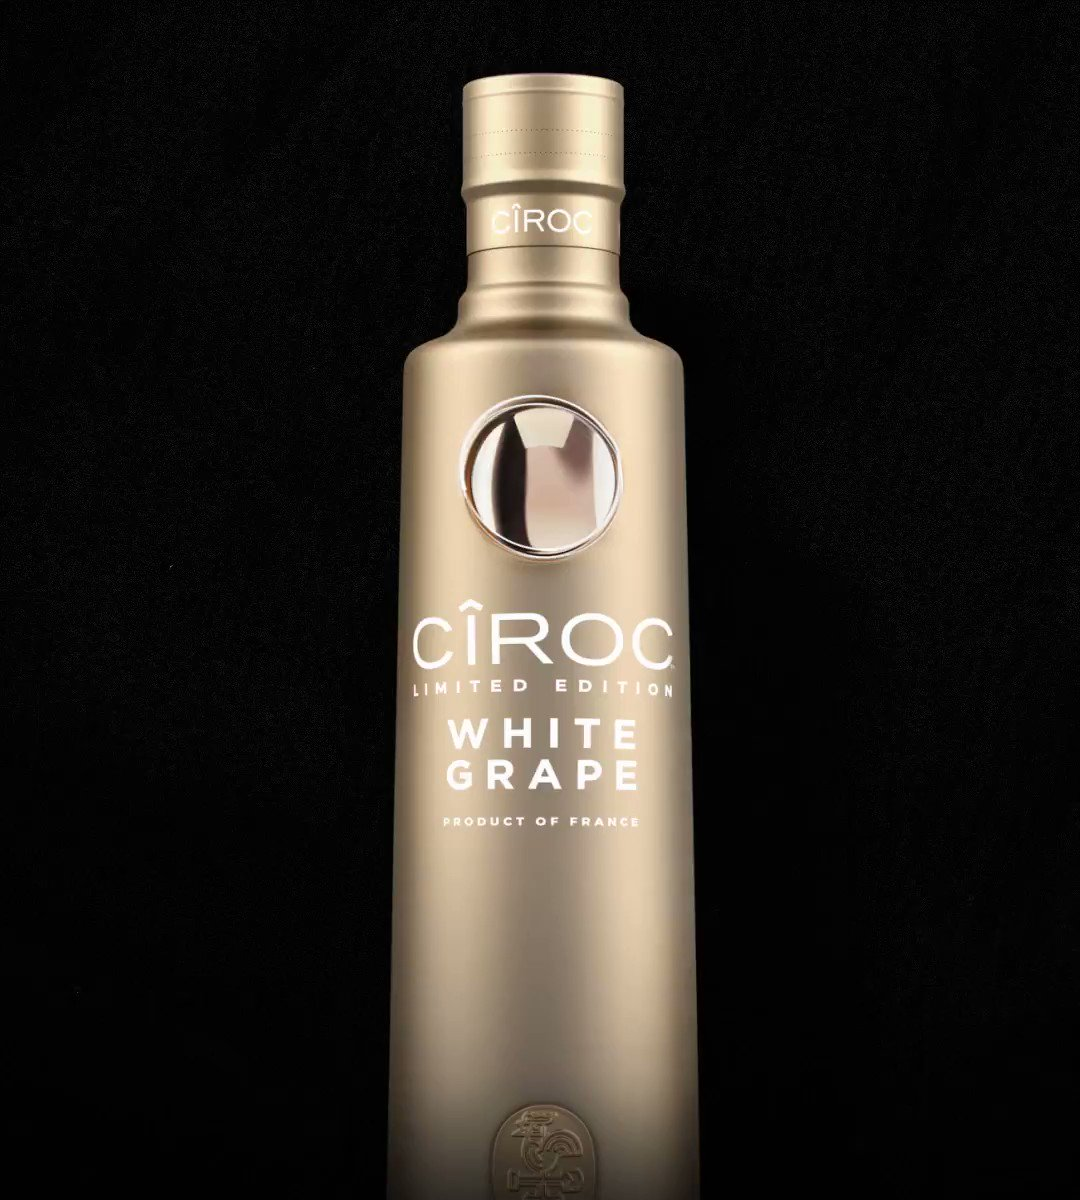 Big Games call for big, Ciroc style celebrations. Get into a winning mood with our limited edition CÎROC White Grape ultra premium vodka.